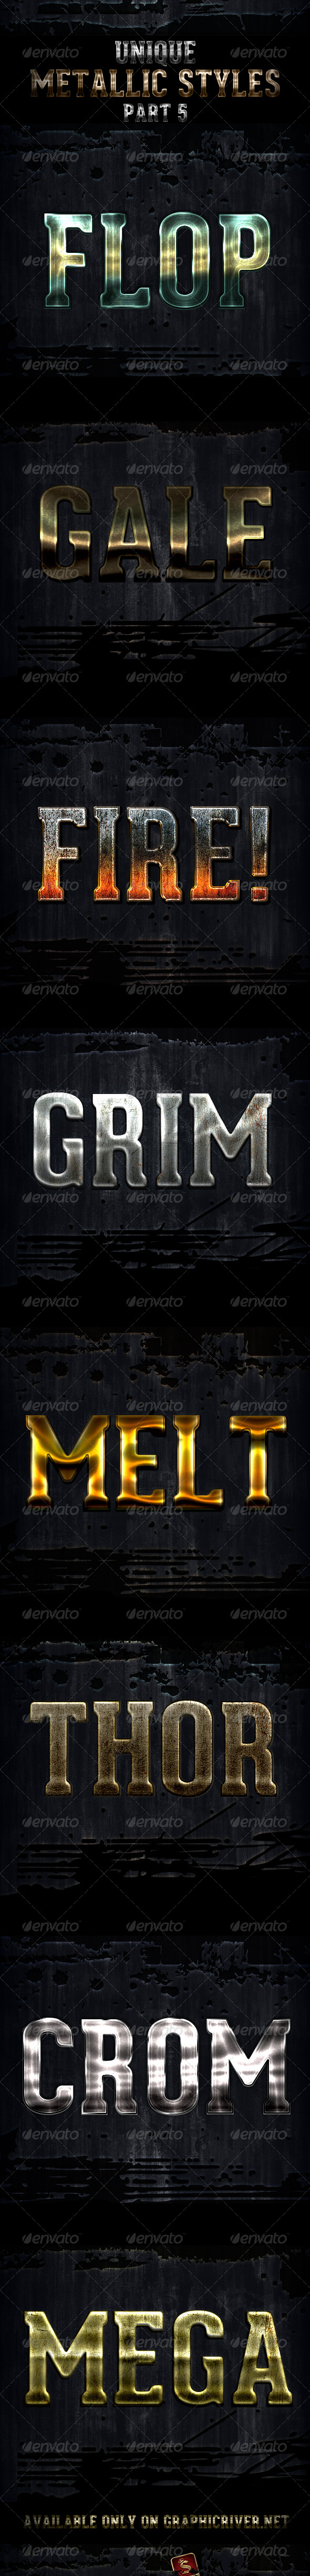 GraphicRiver Unique Metallic Styles Part 5 4561194